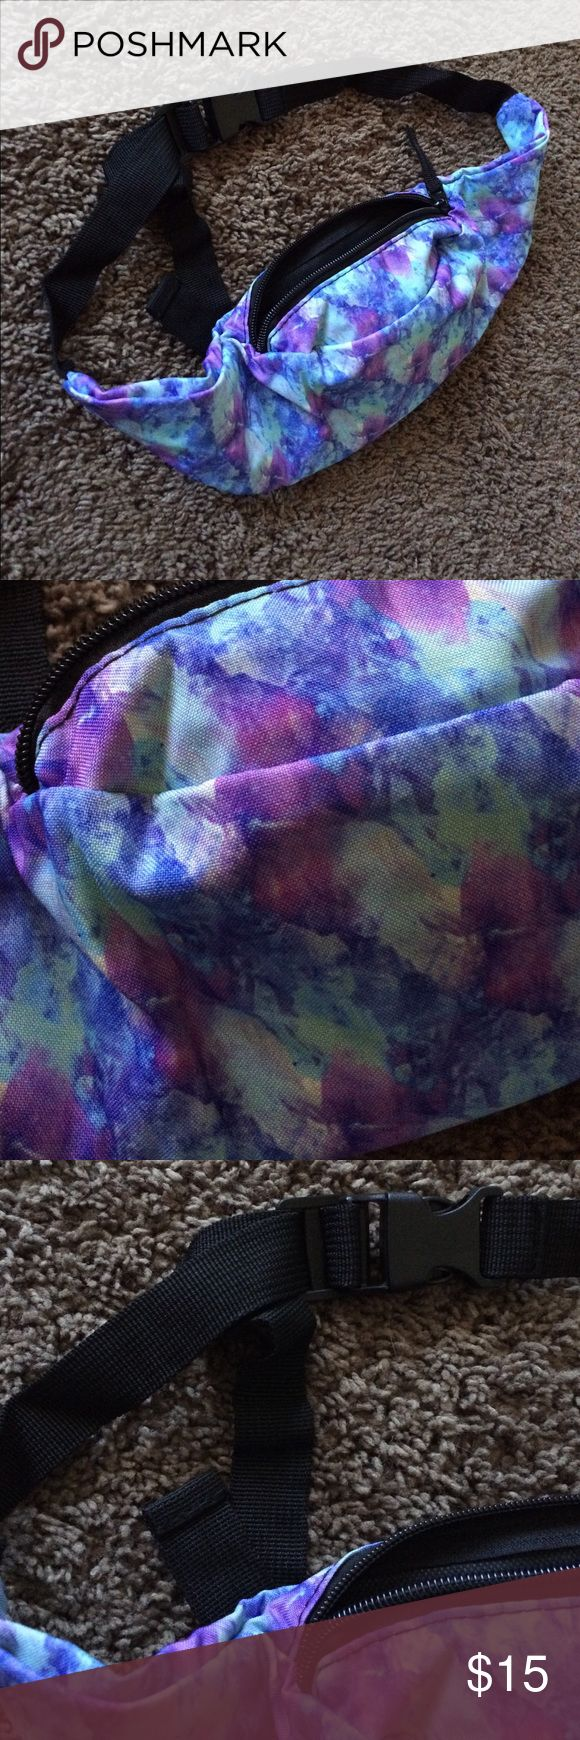 Watercolor festival / rave fanny pack! 🆕💙💜 Brand new/ never used fanny pack! Has a blue and purple watercolor flowery pattern (shown in pics), holds a good amount of stuff for the compact size :-) offers welcome! ✅ check out all my items (including this one!) on vinted & mercari for less! 😇 festival wear Accessories